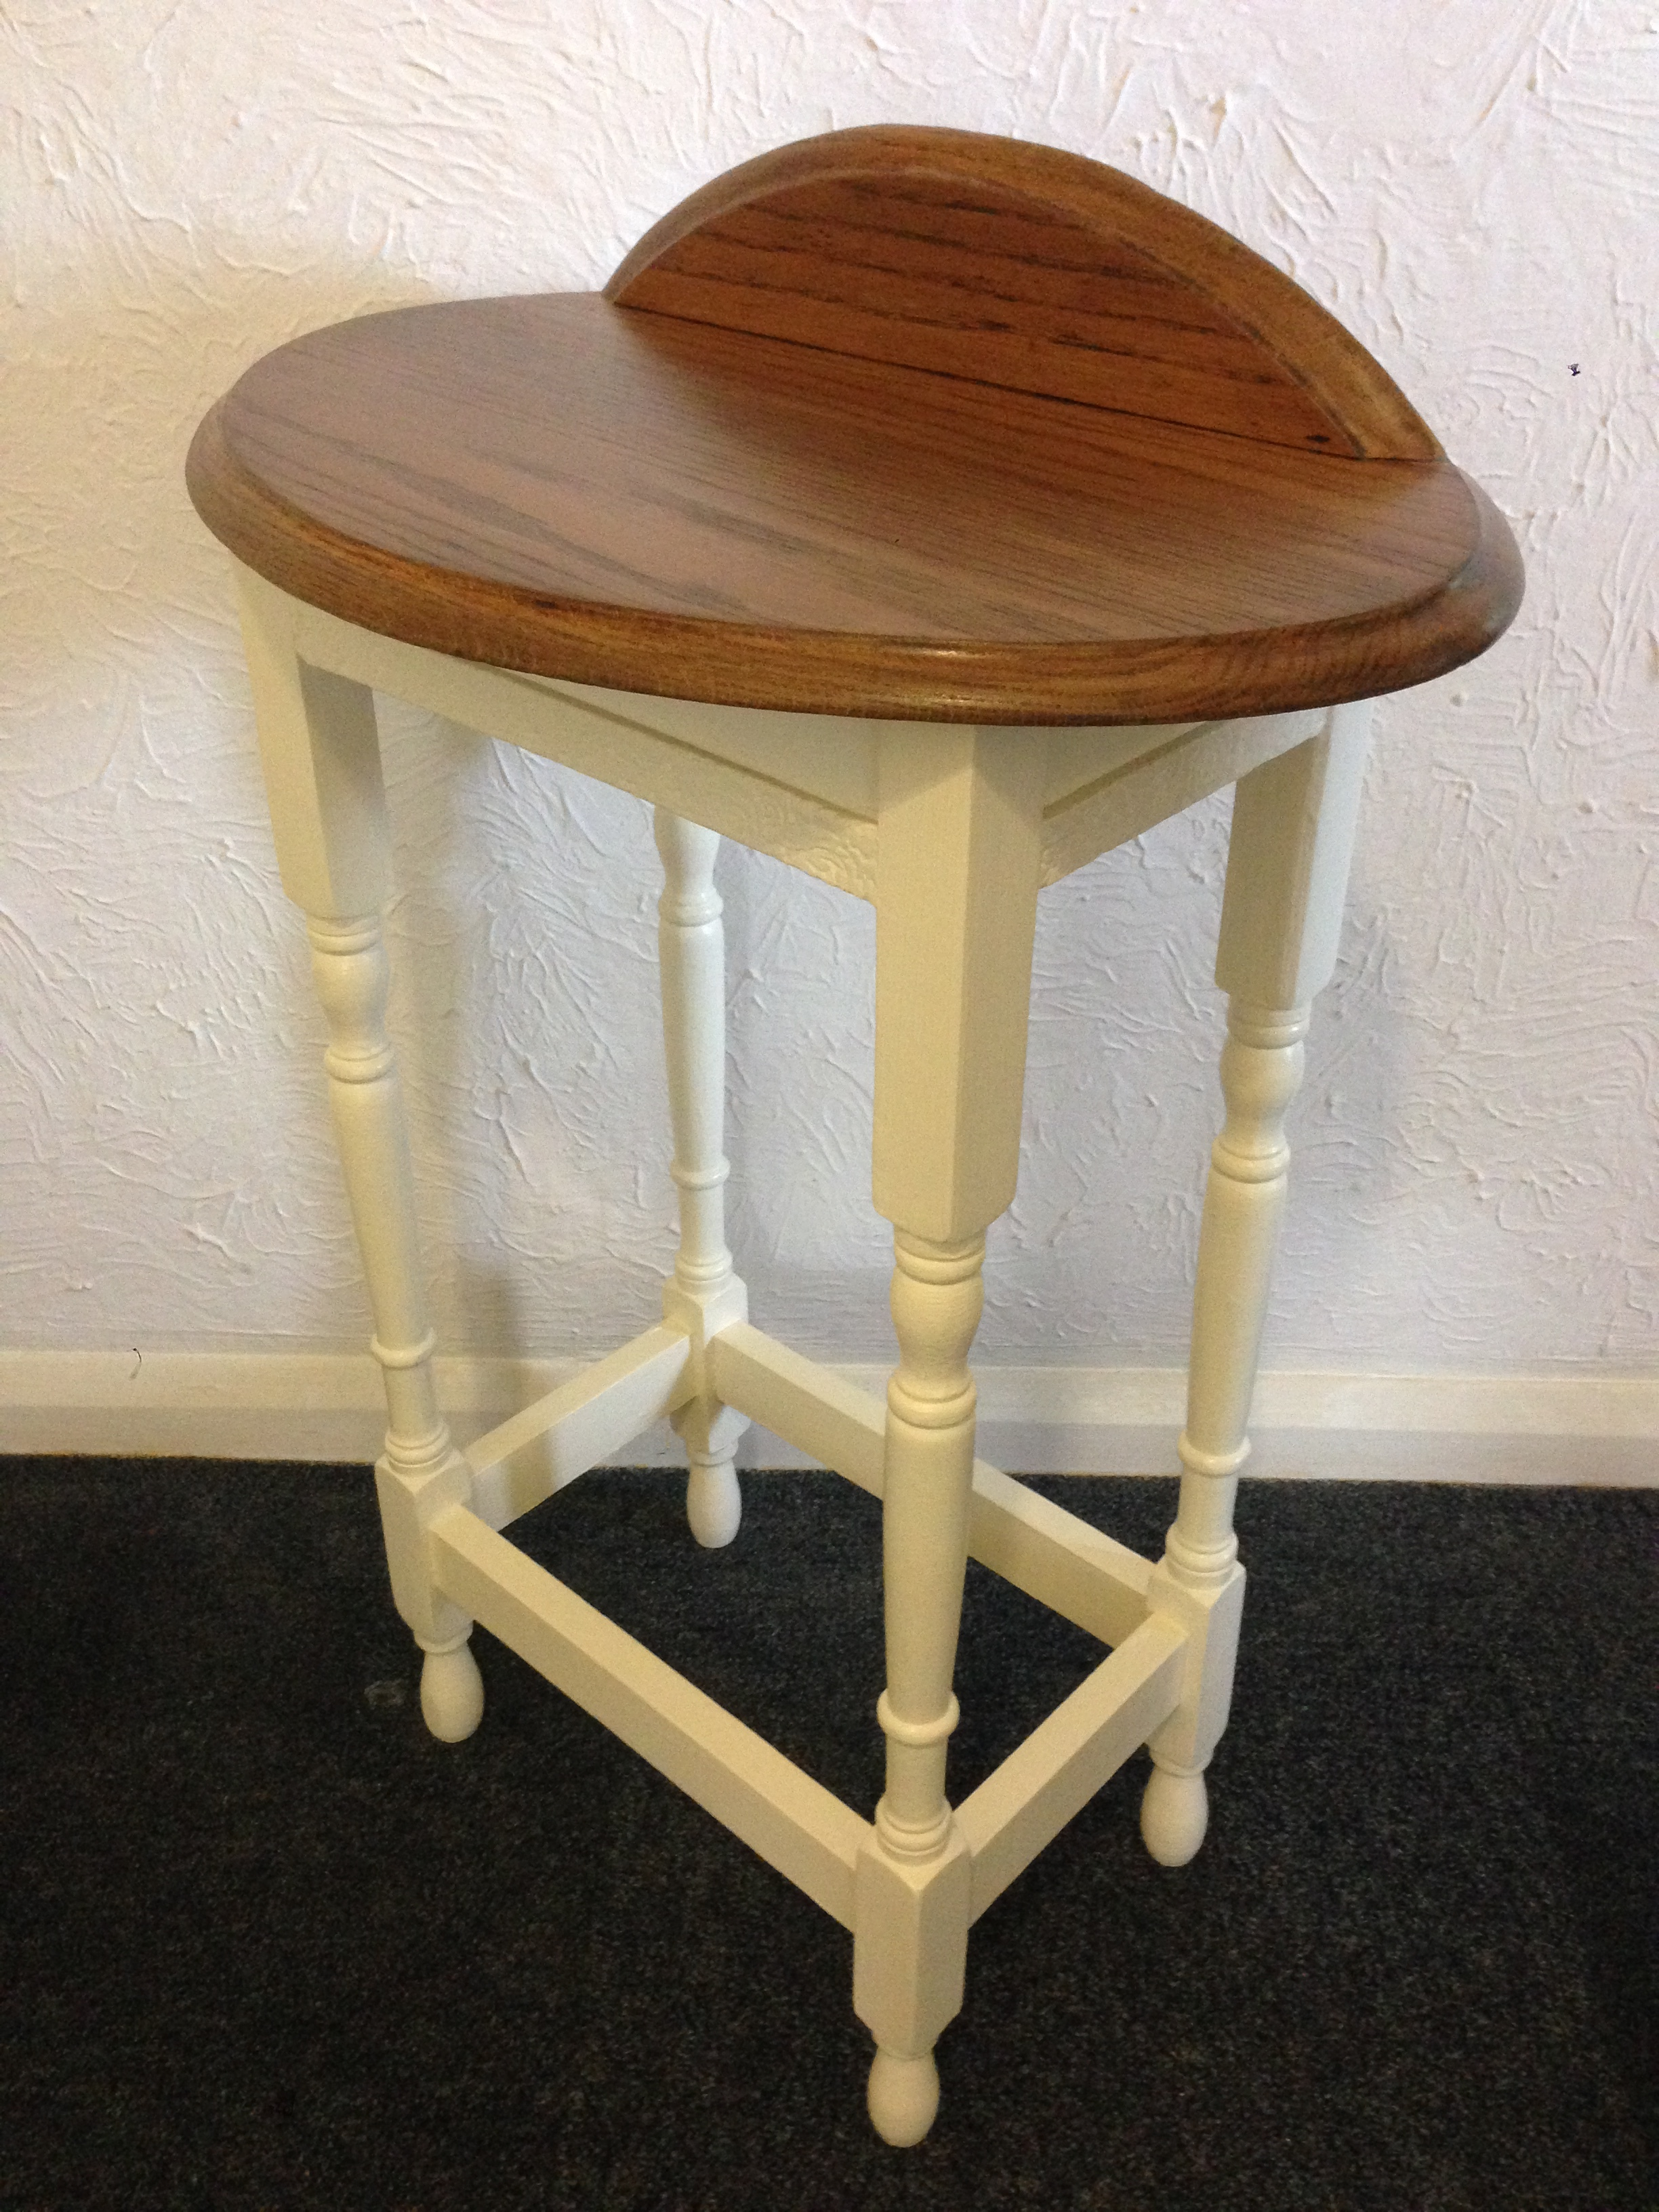 During Restoration of Oak Dressing Table   The table was stripped back and the scratches were removed.